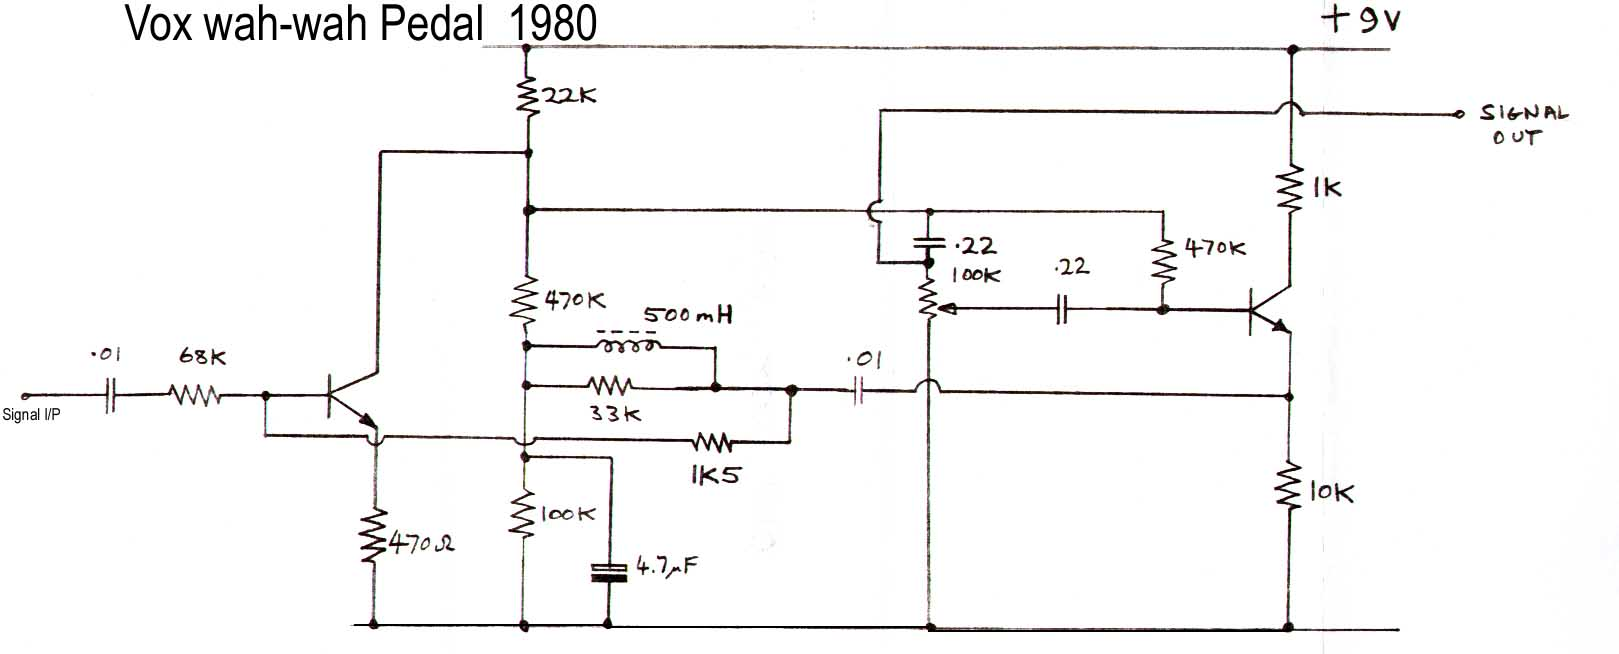 Vox Wah Pedal Wiring Diagram And Schematics 1980